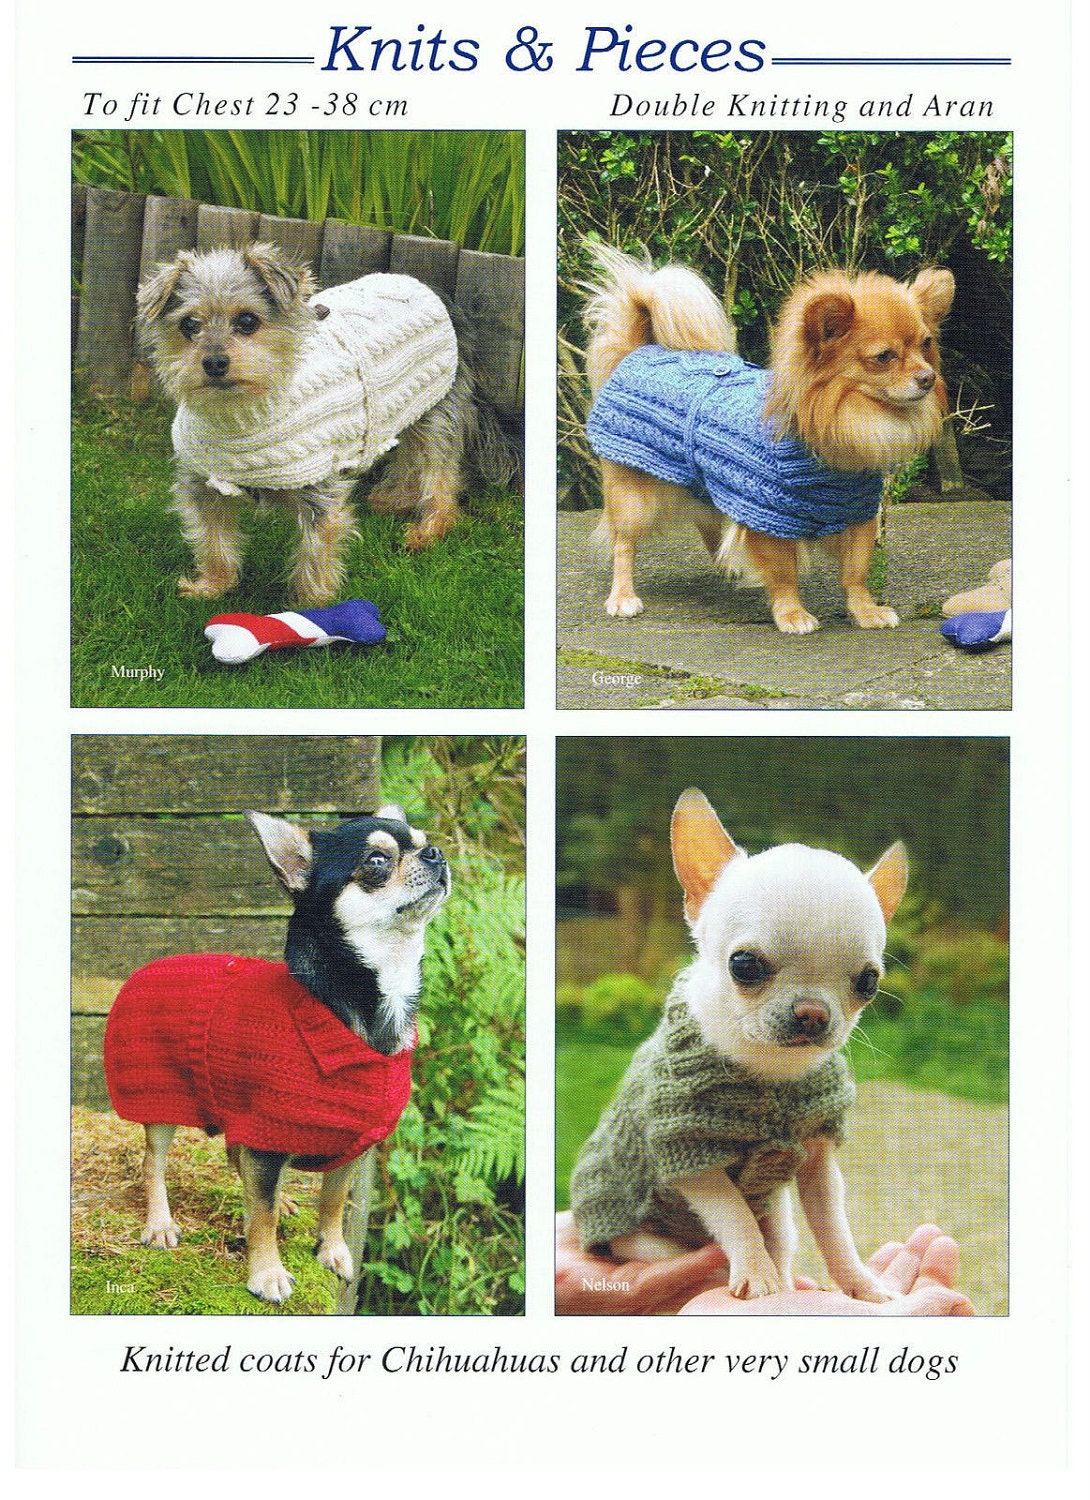 Knitting pattern for dog coat dog sweater very small dog coat knitted dog coat pattern kp 06 sold by debsknittingmadness bankloansurffo Gallery